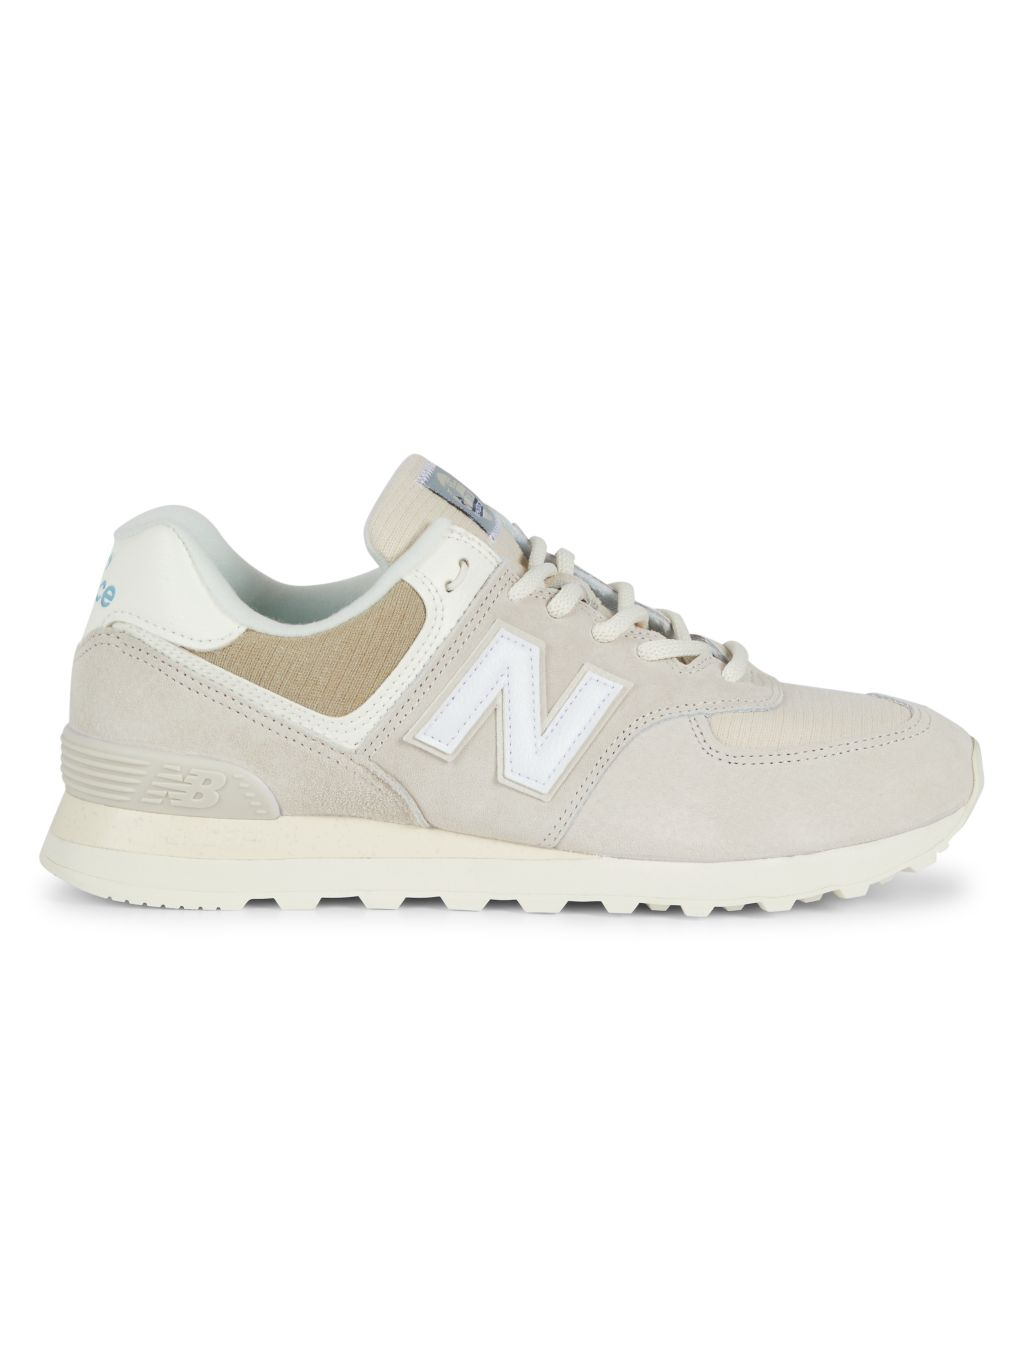 New Balance Suede & Textile Sneakers